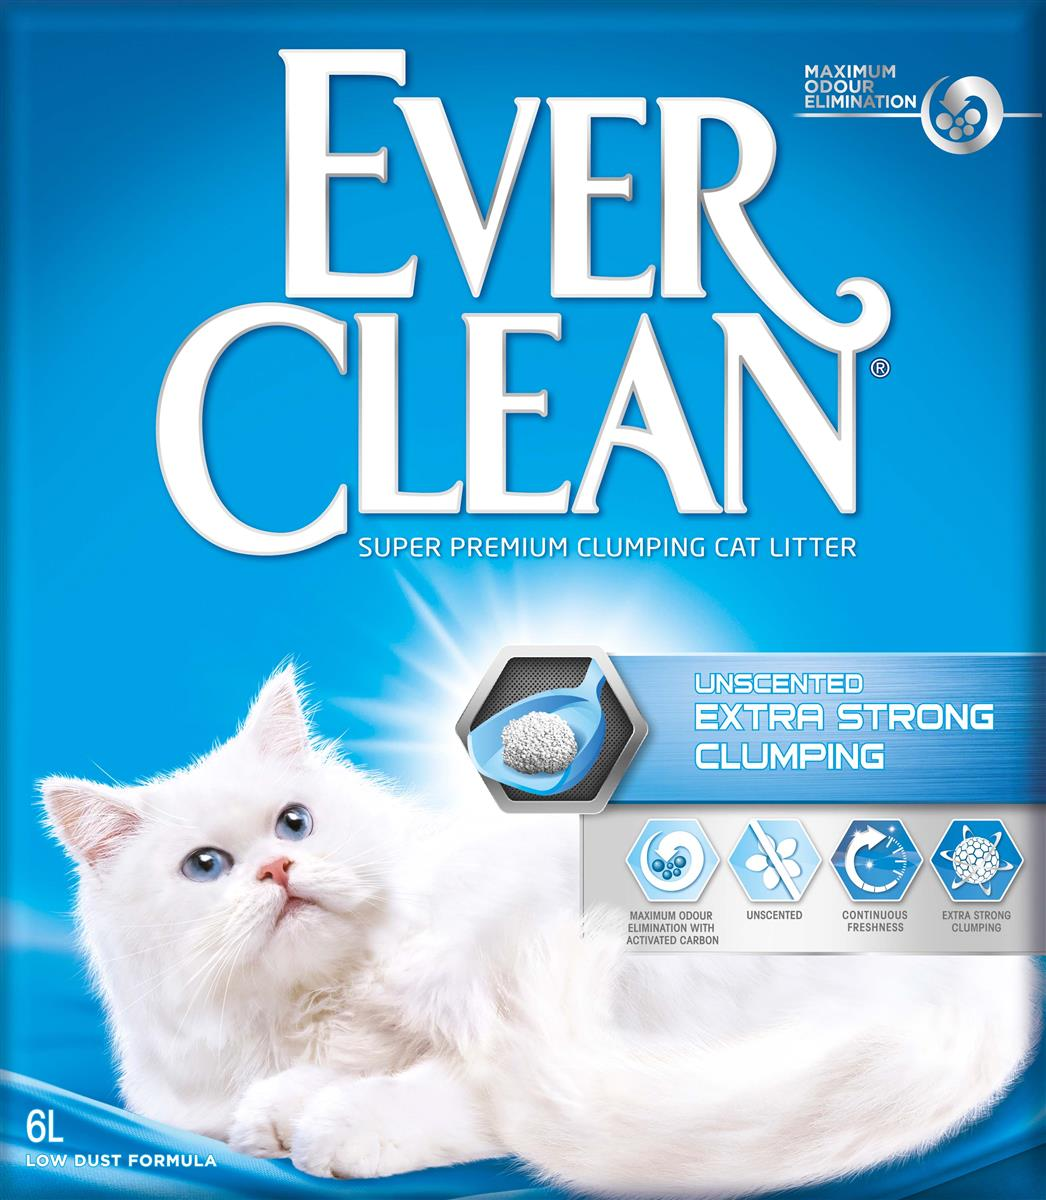 Ever Clean Extra Strong Clumping Unscented, 6 ltr